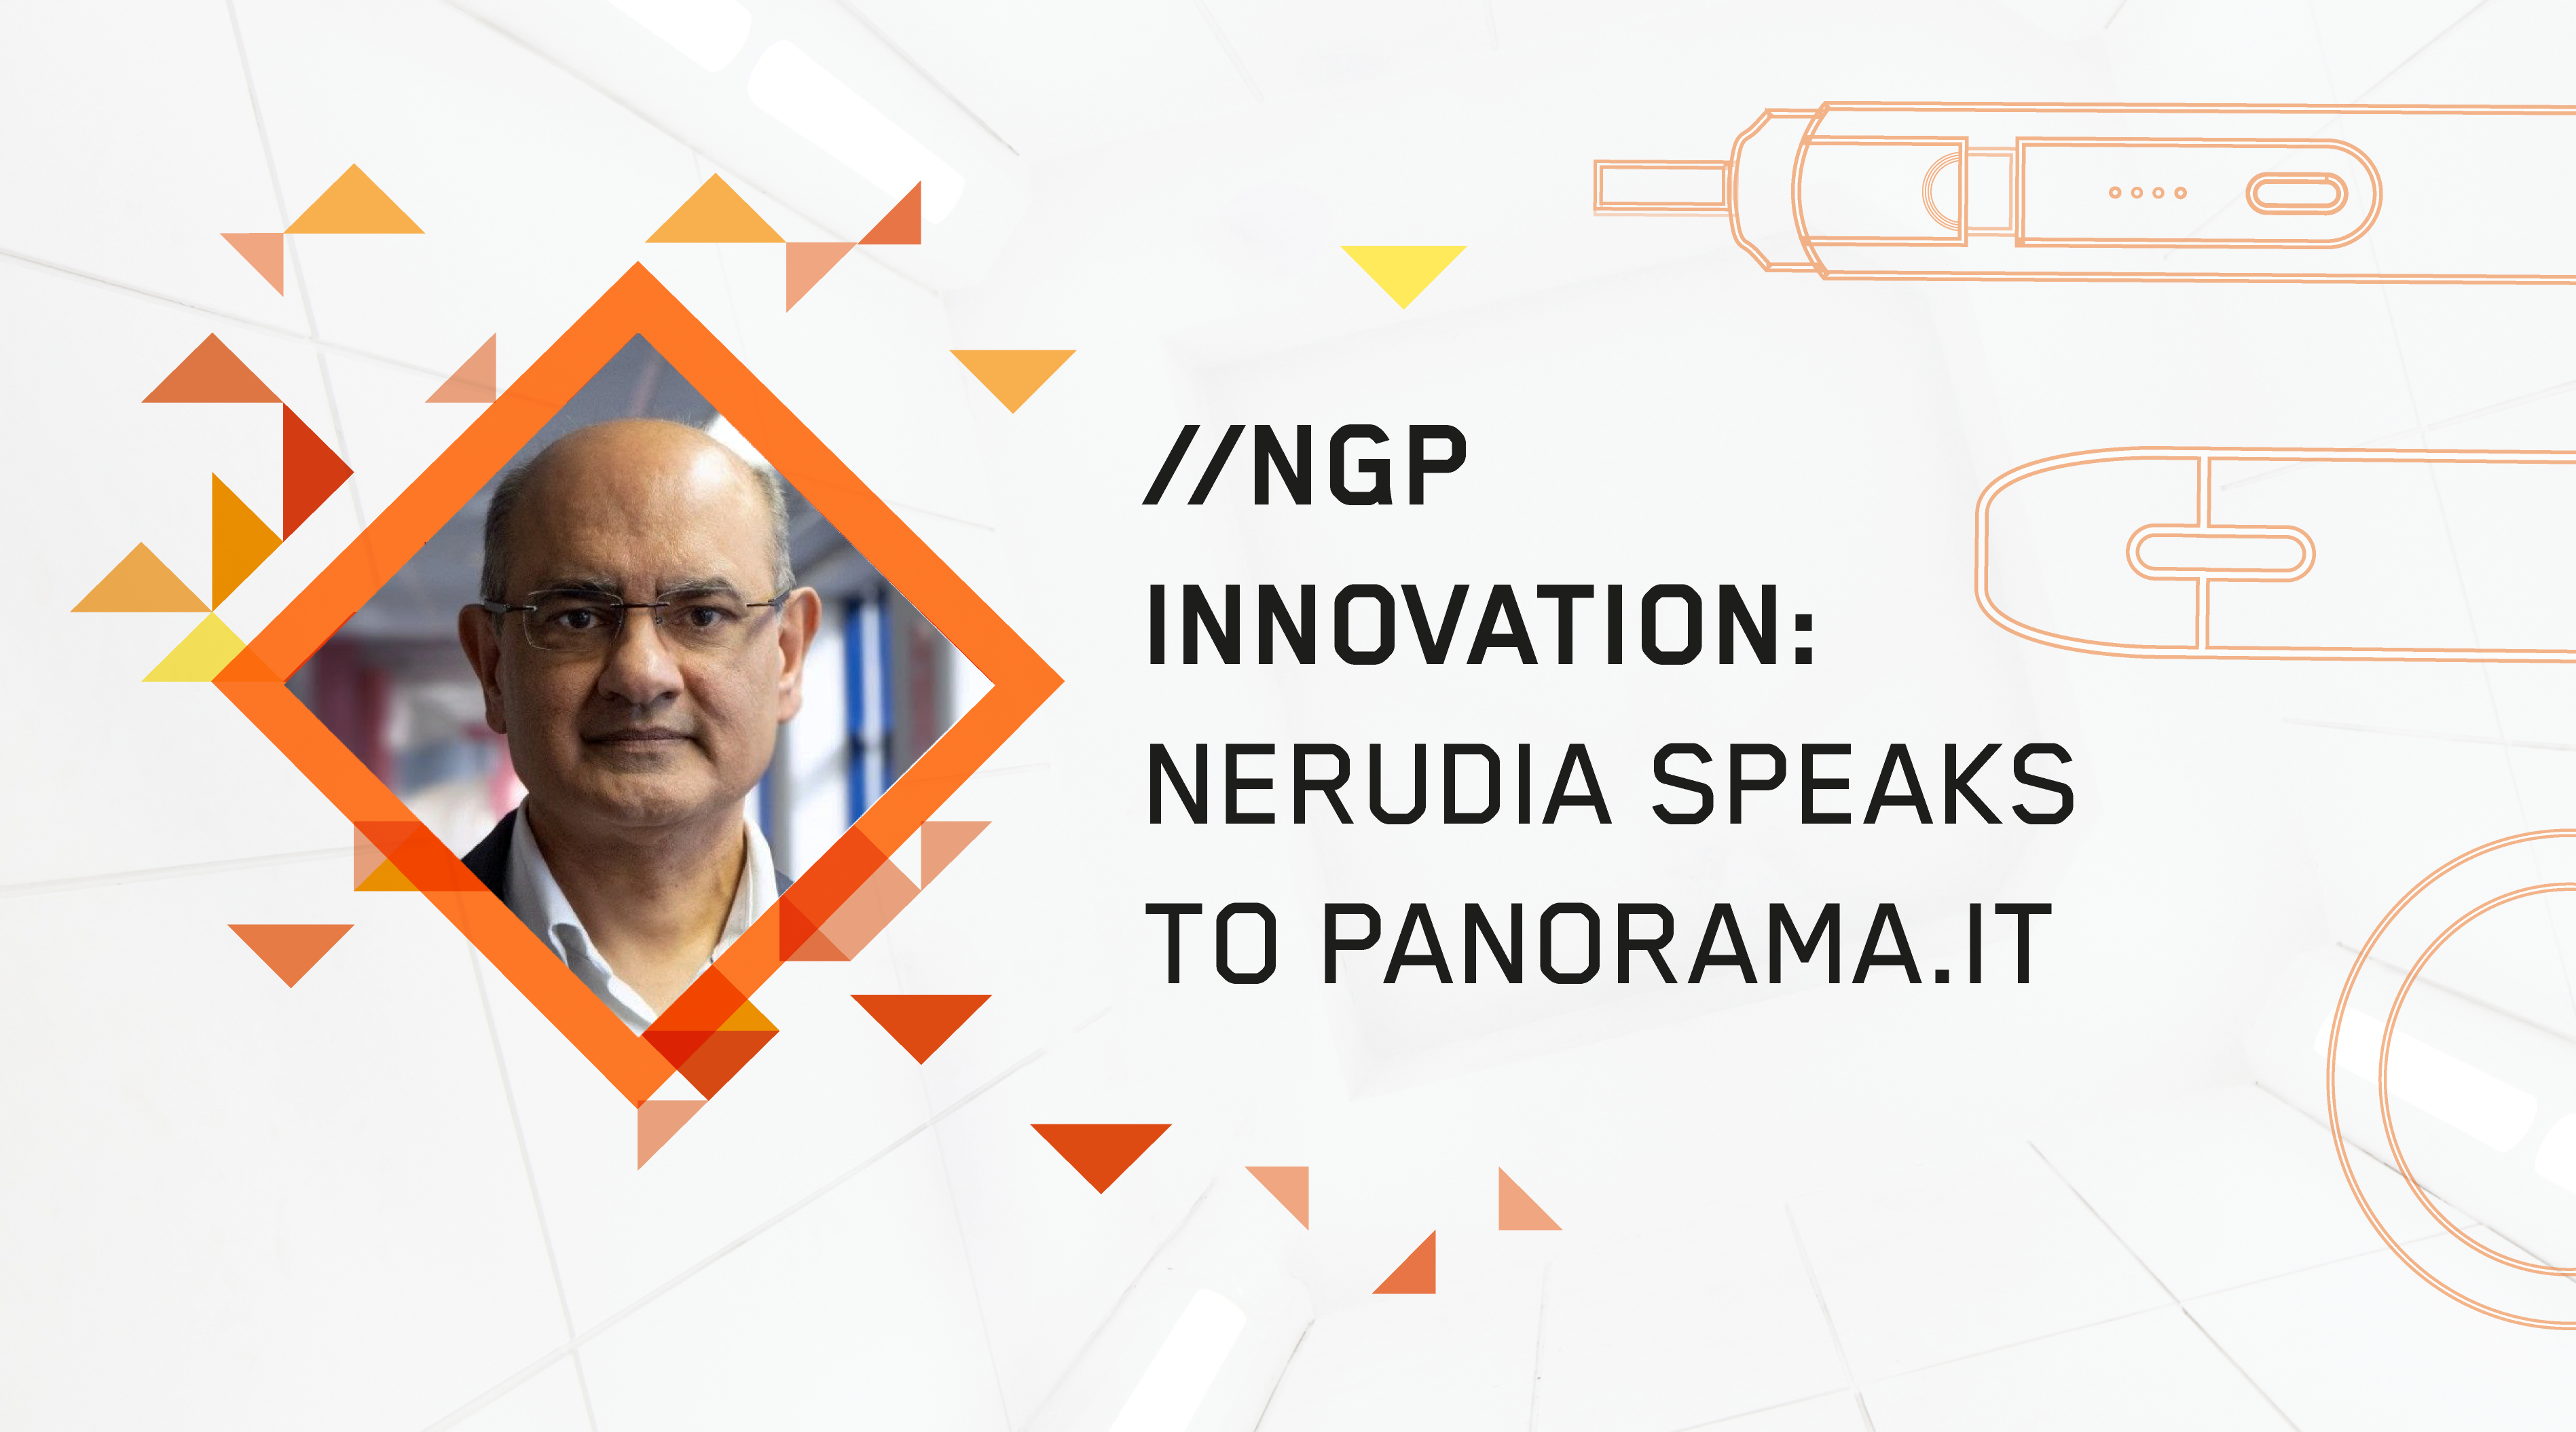 NGP innovation: Nerudia speaks to Panorama.it